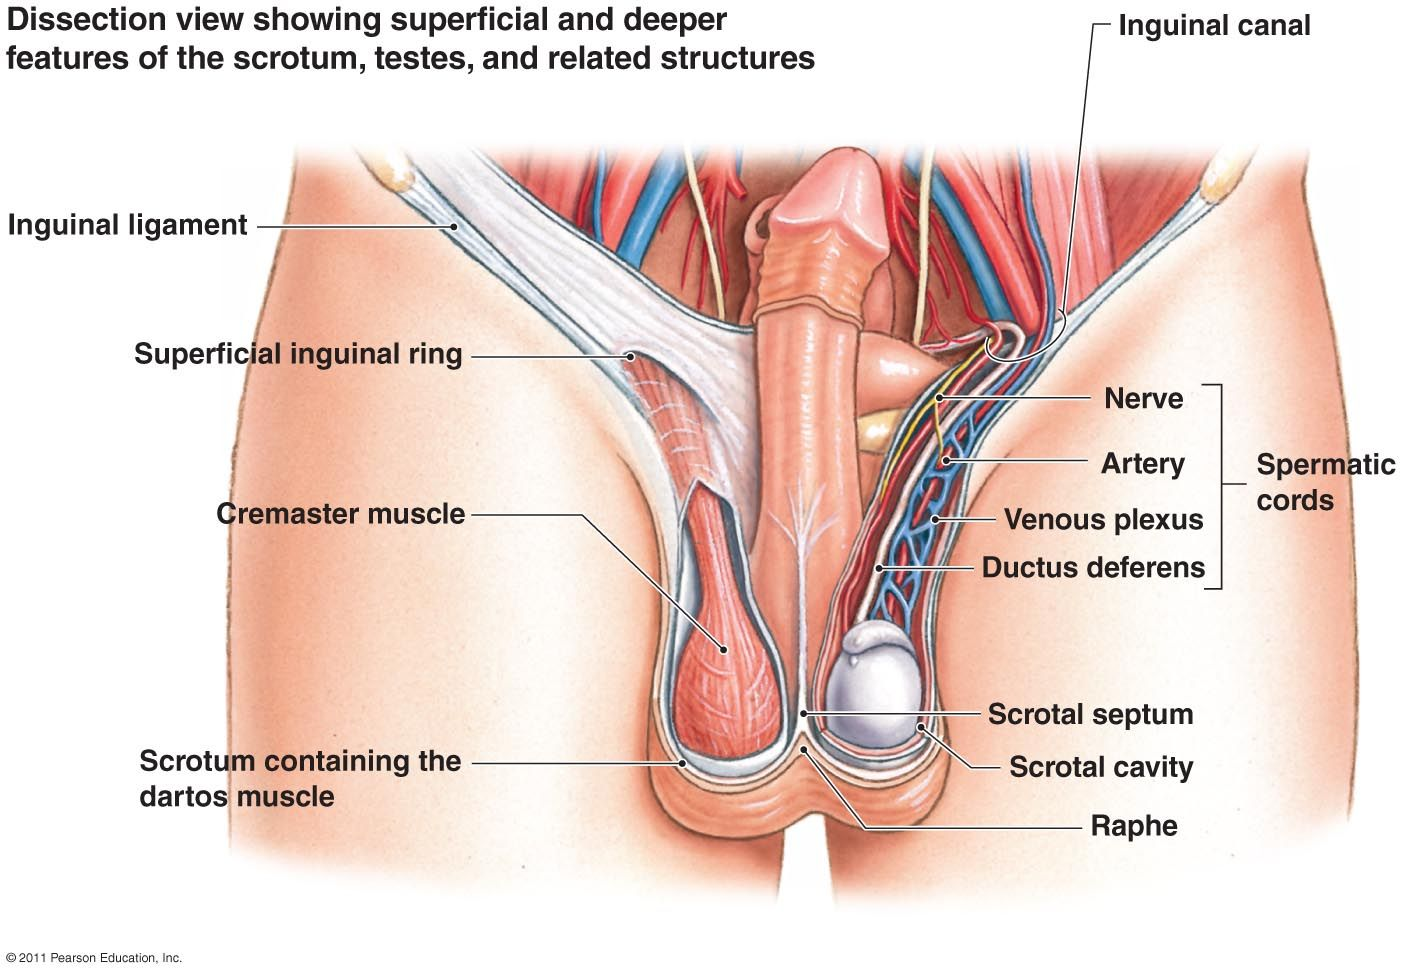 Sexual organs: structure, features